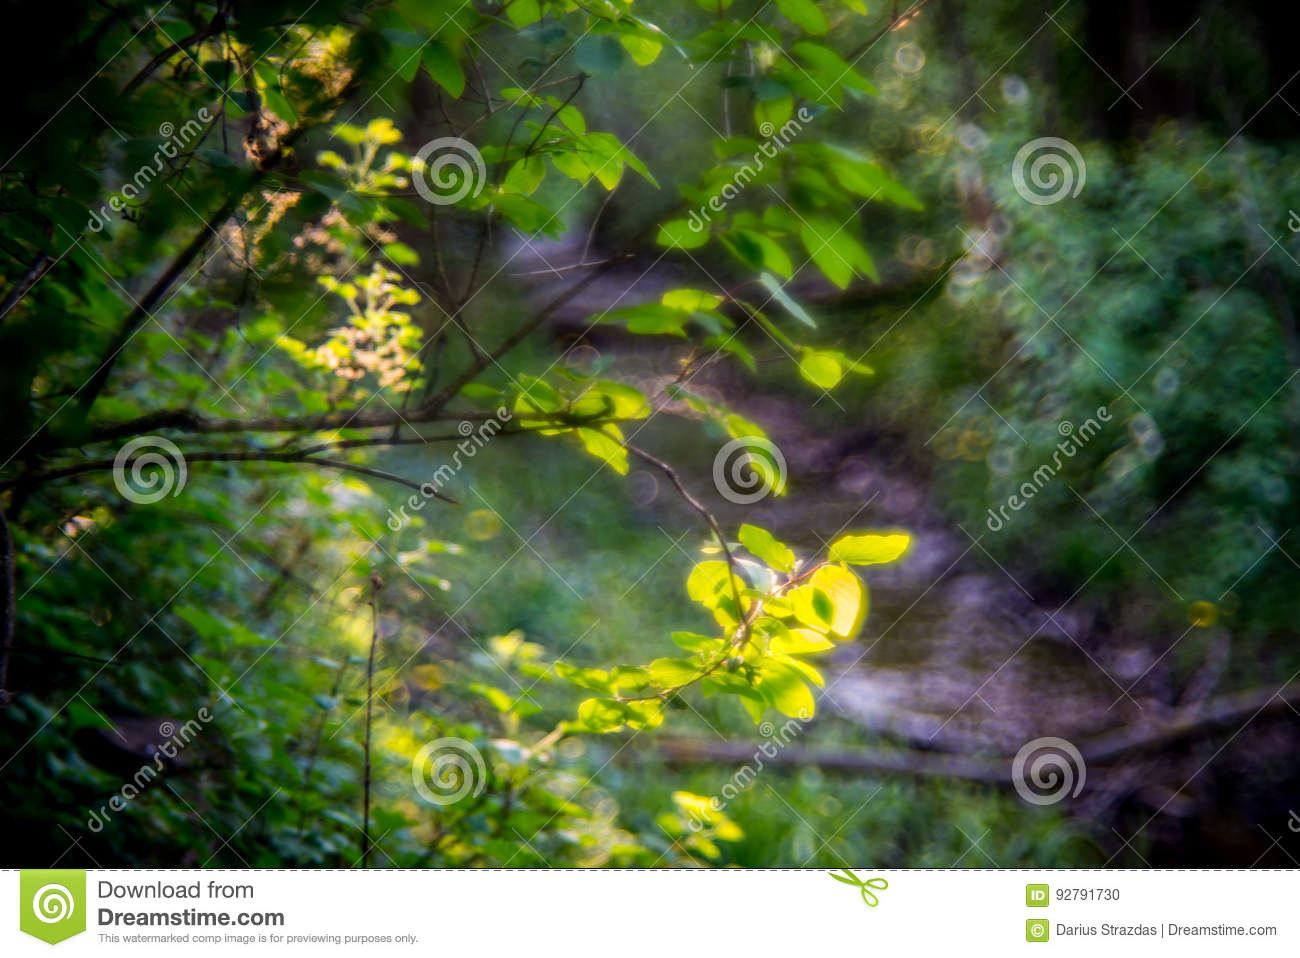 Forest wallpaper stock photo  Image of lenses, perfection - 92791730